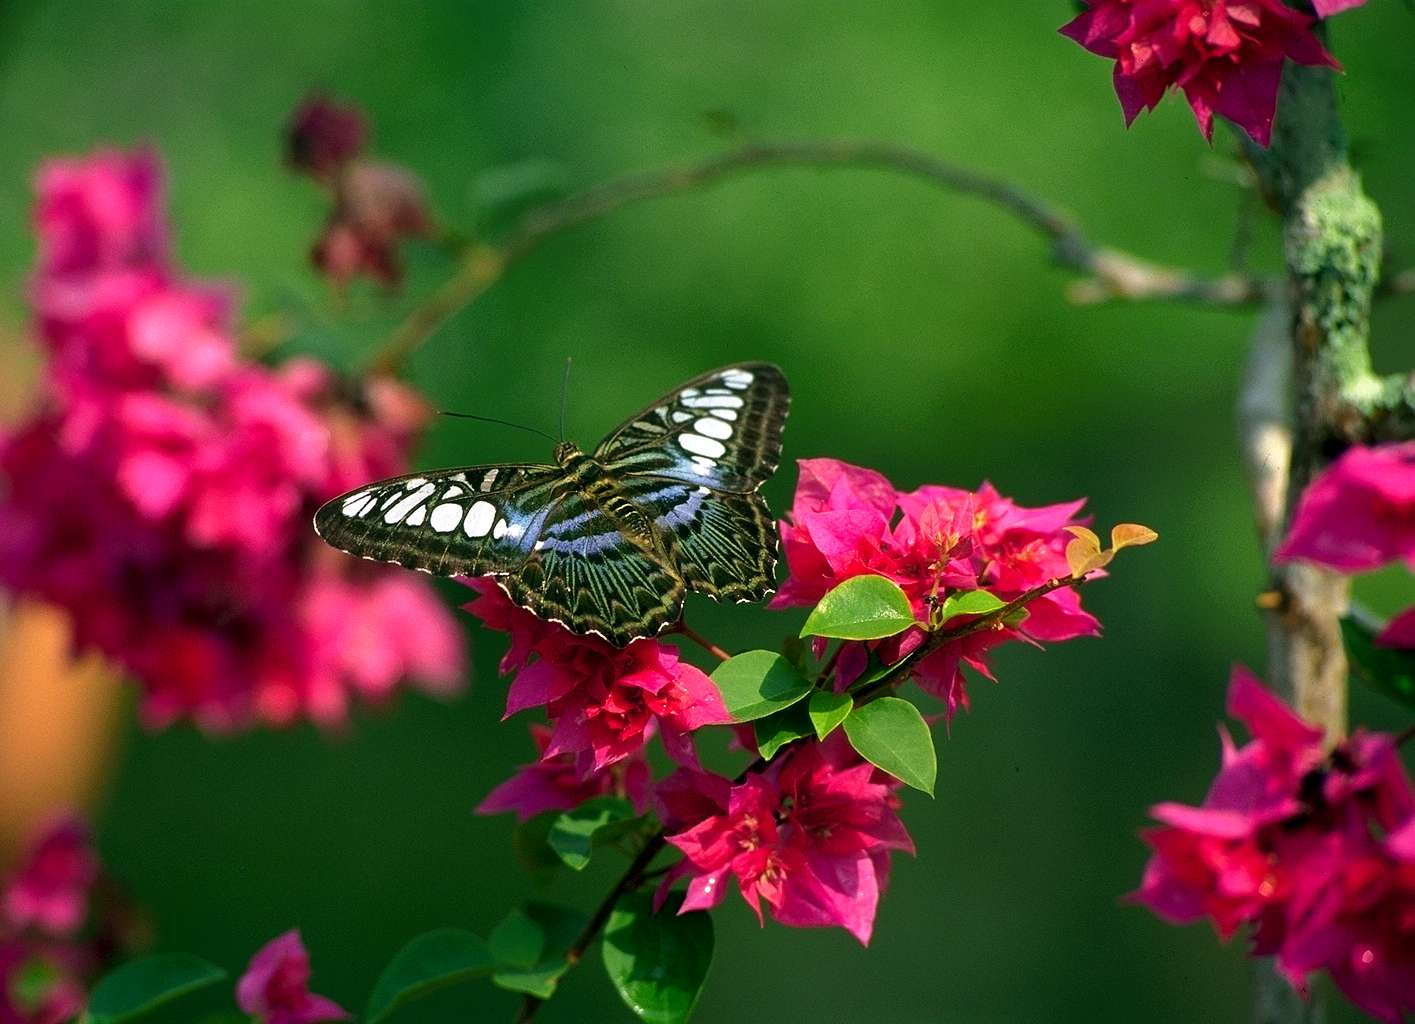 Beautiful Pictures Of Flowers And Butterflies Birds Flowers For Flower Lovers Flowers Butterfly Natural